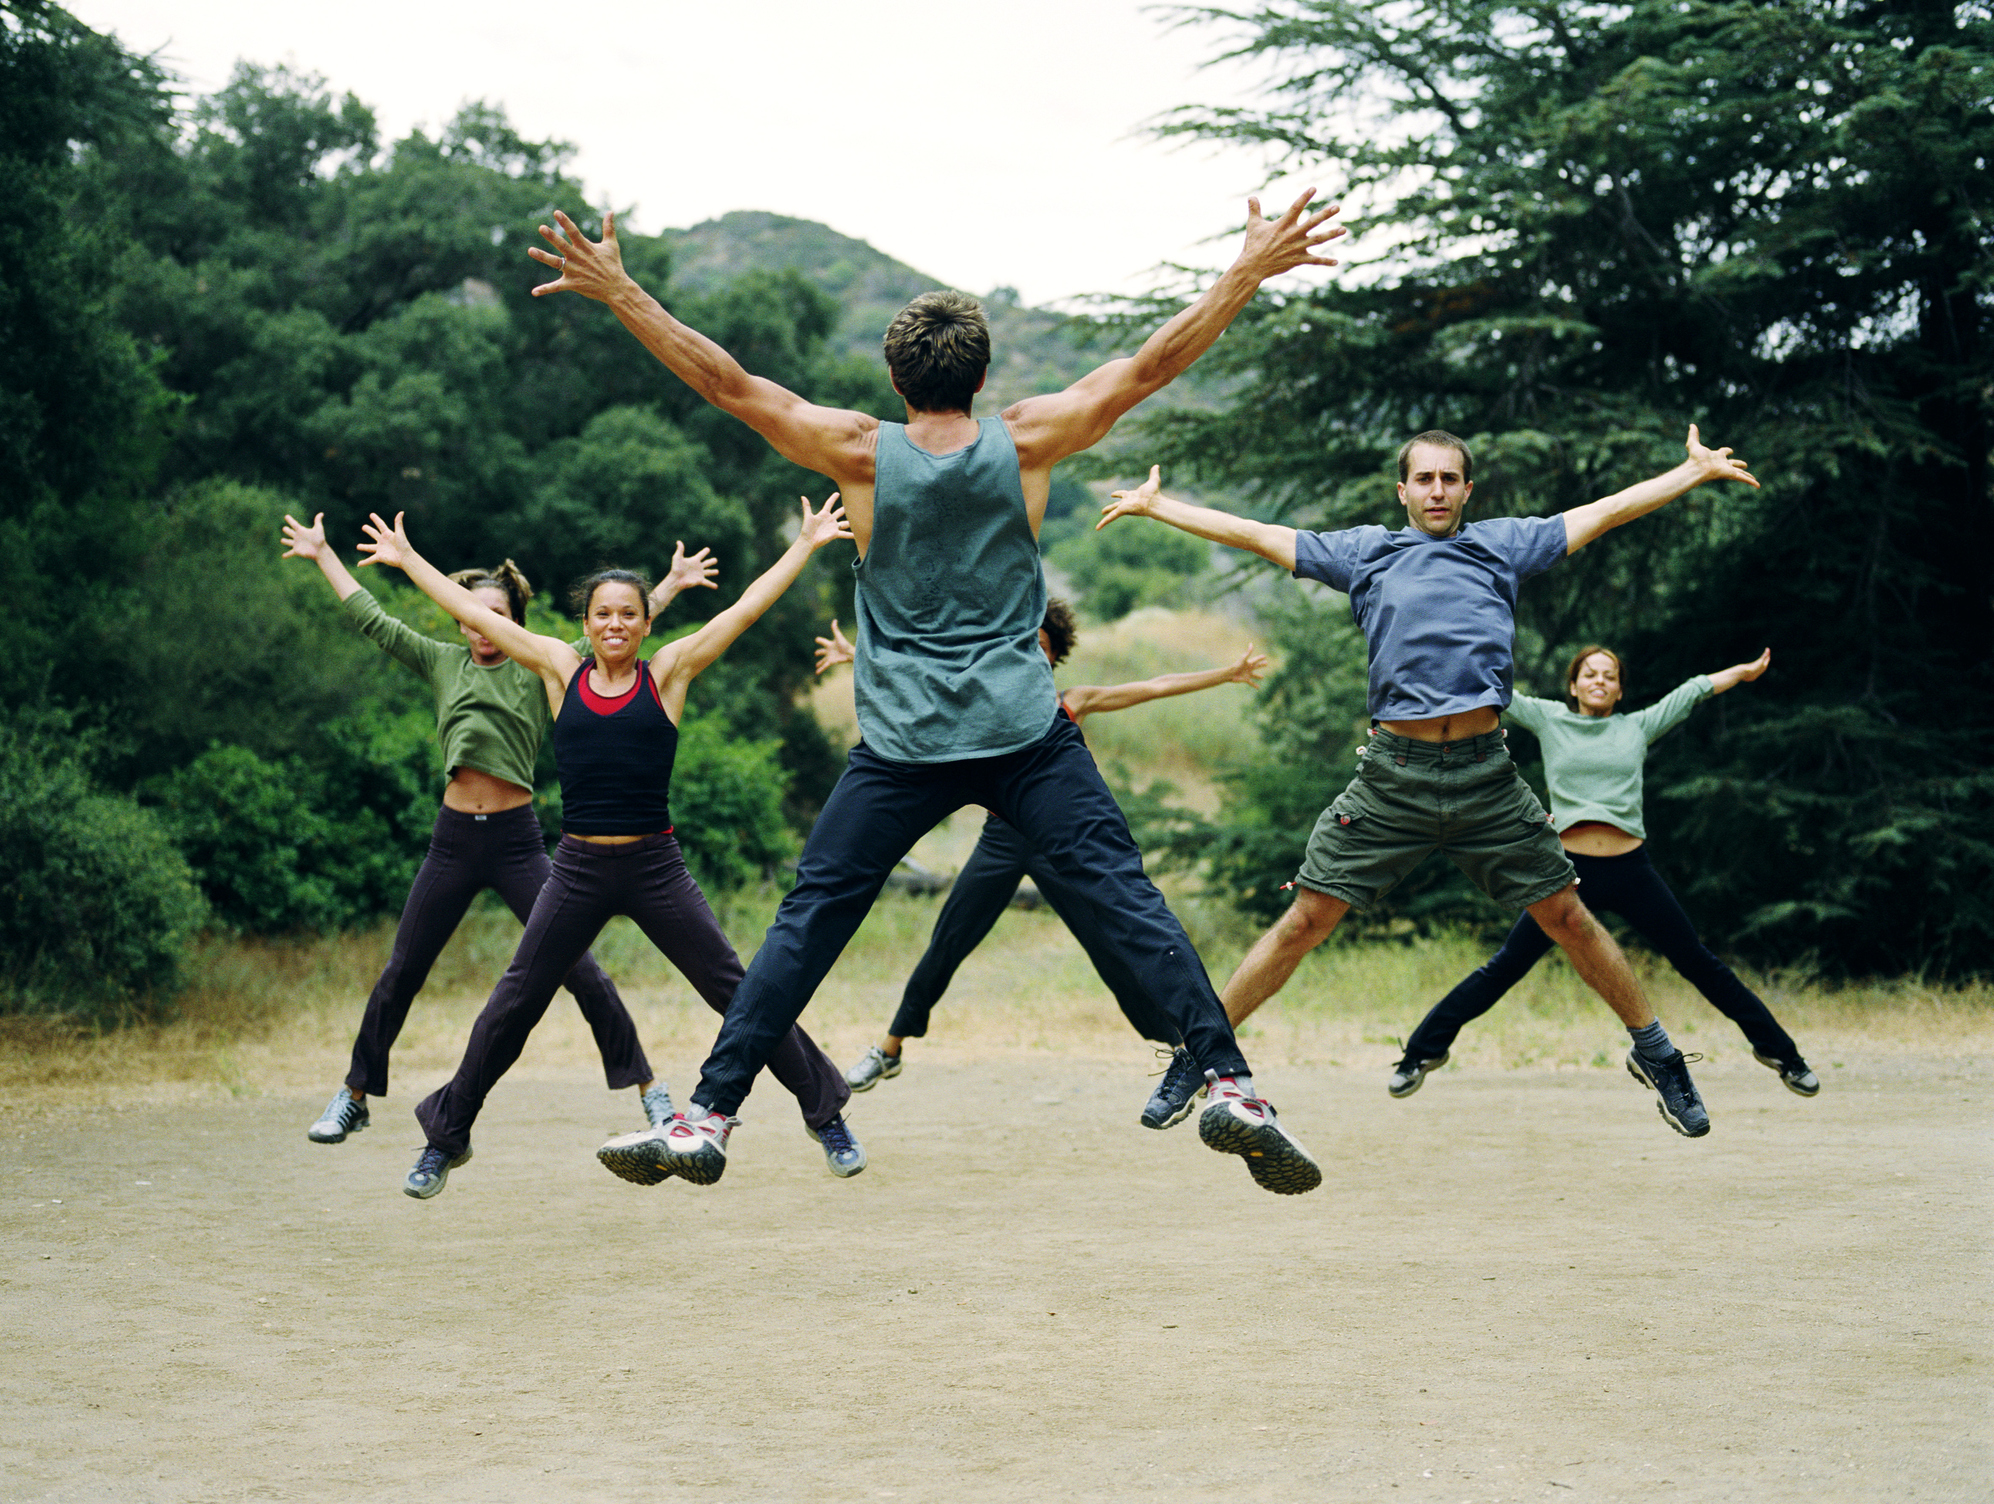 A group of people with ADHD exercise as part of ADHD treatment plan.